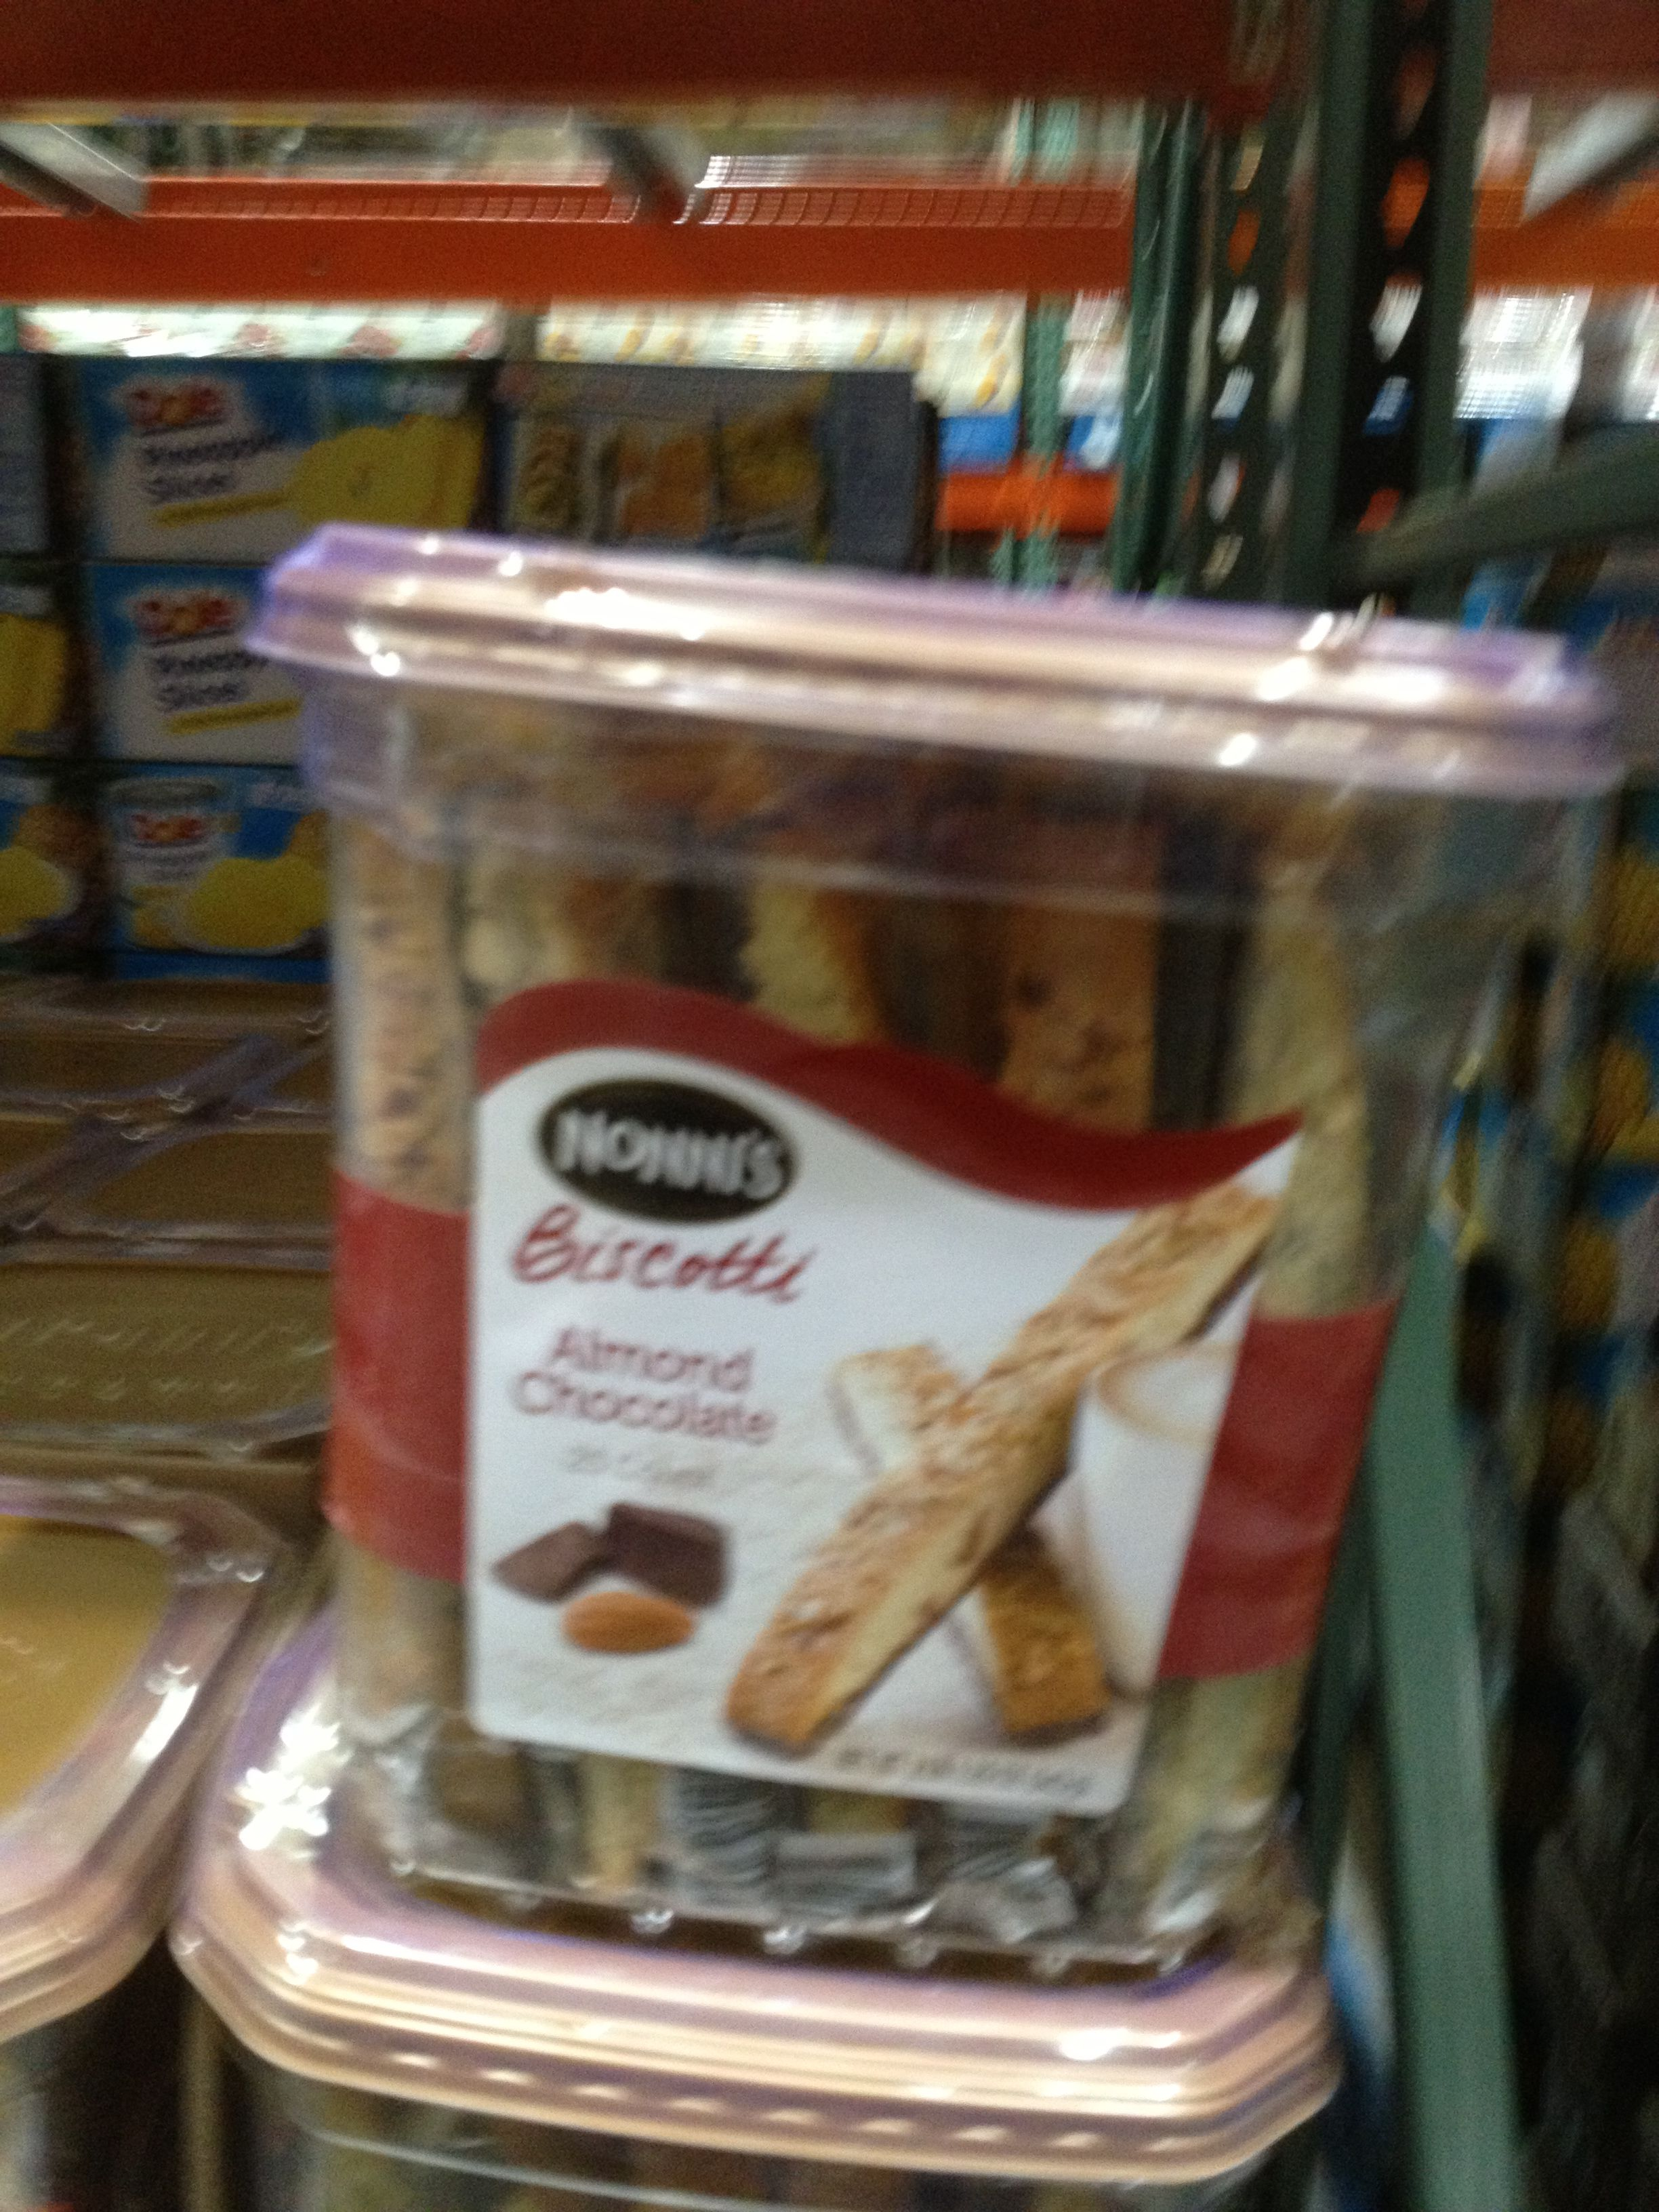 costco mini cheese cakes 12 99 for 54 one inch squares baby costco almond chocolate biscotti 9 99 individually wrapped